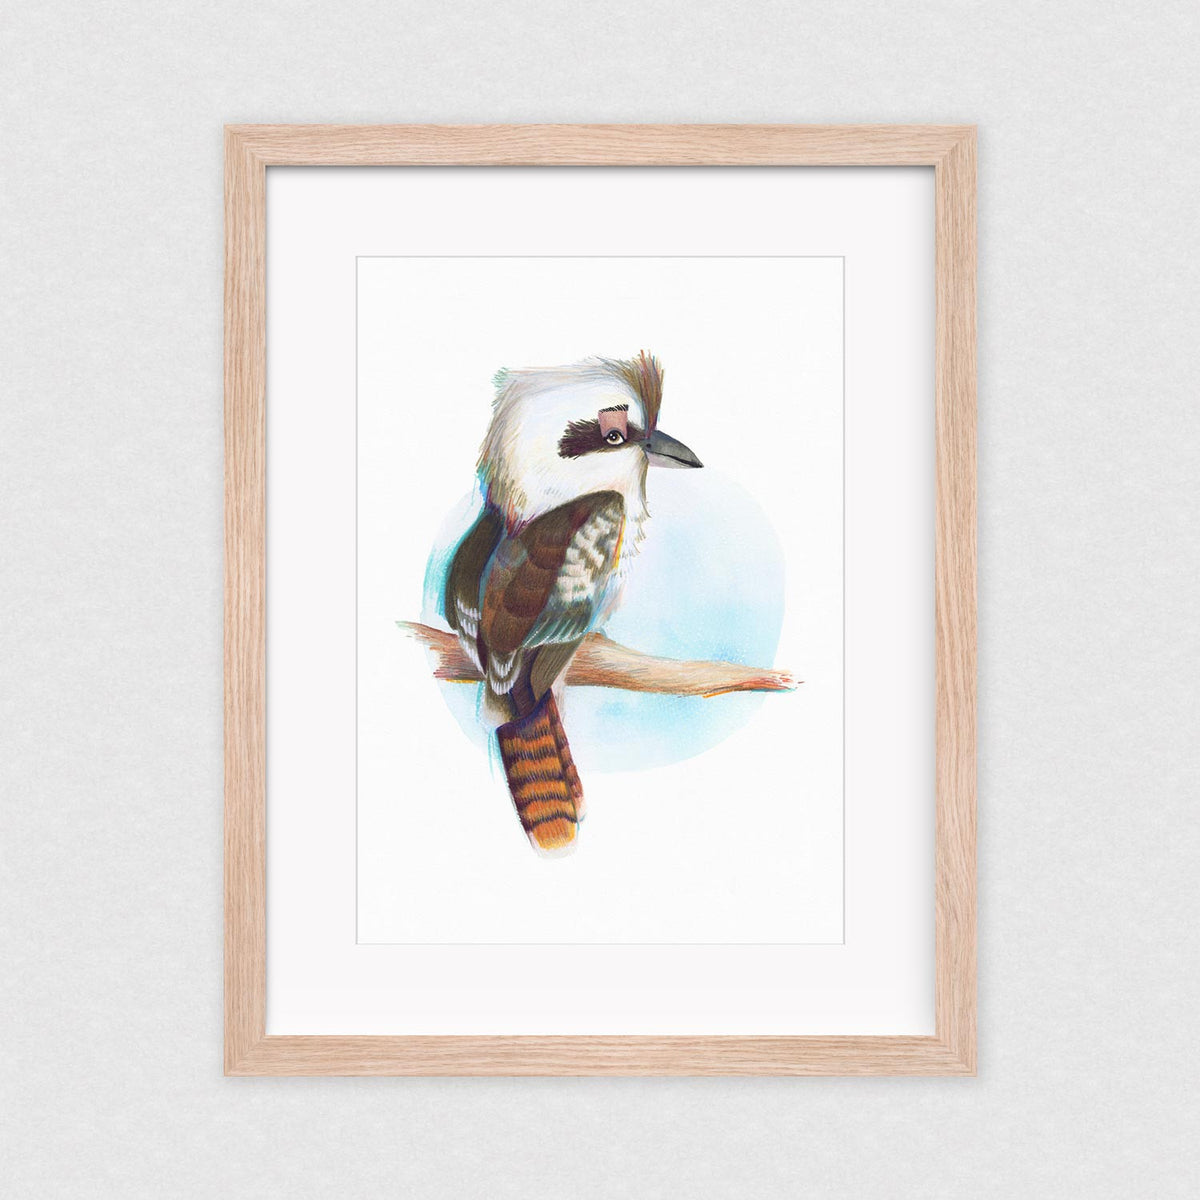 Who's Laughing now? - Framed Limited Edition Print | by Natalie Martin - Framed Prints - Throw Some Seeds